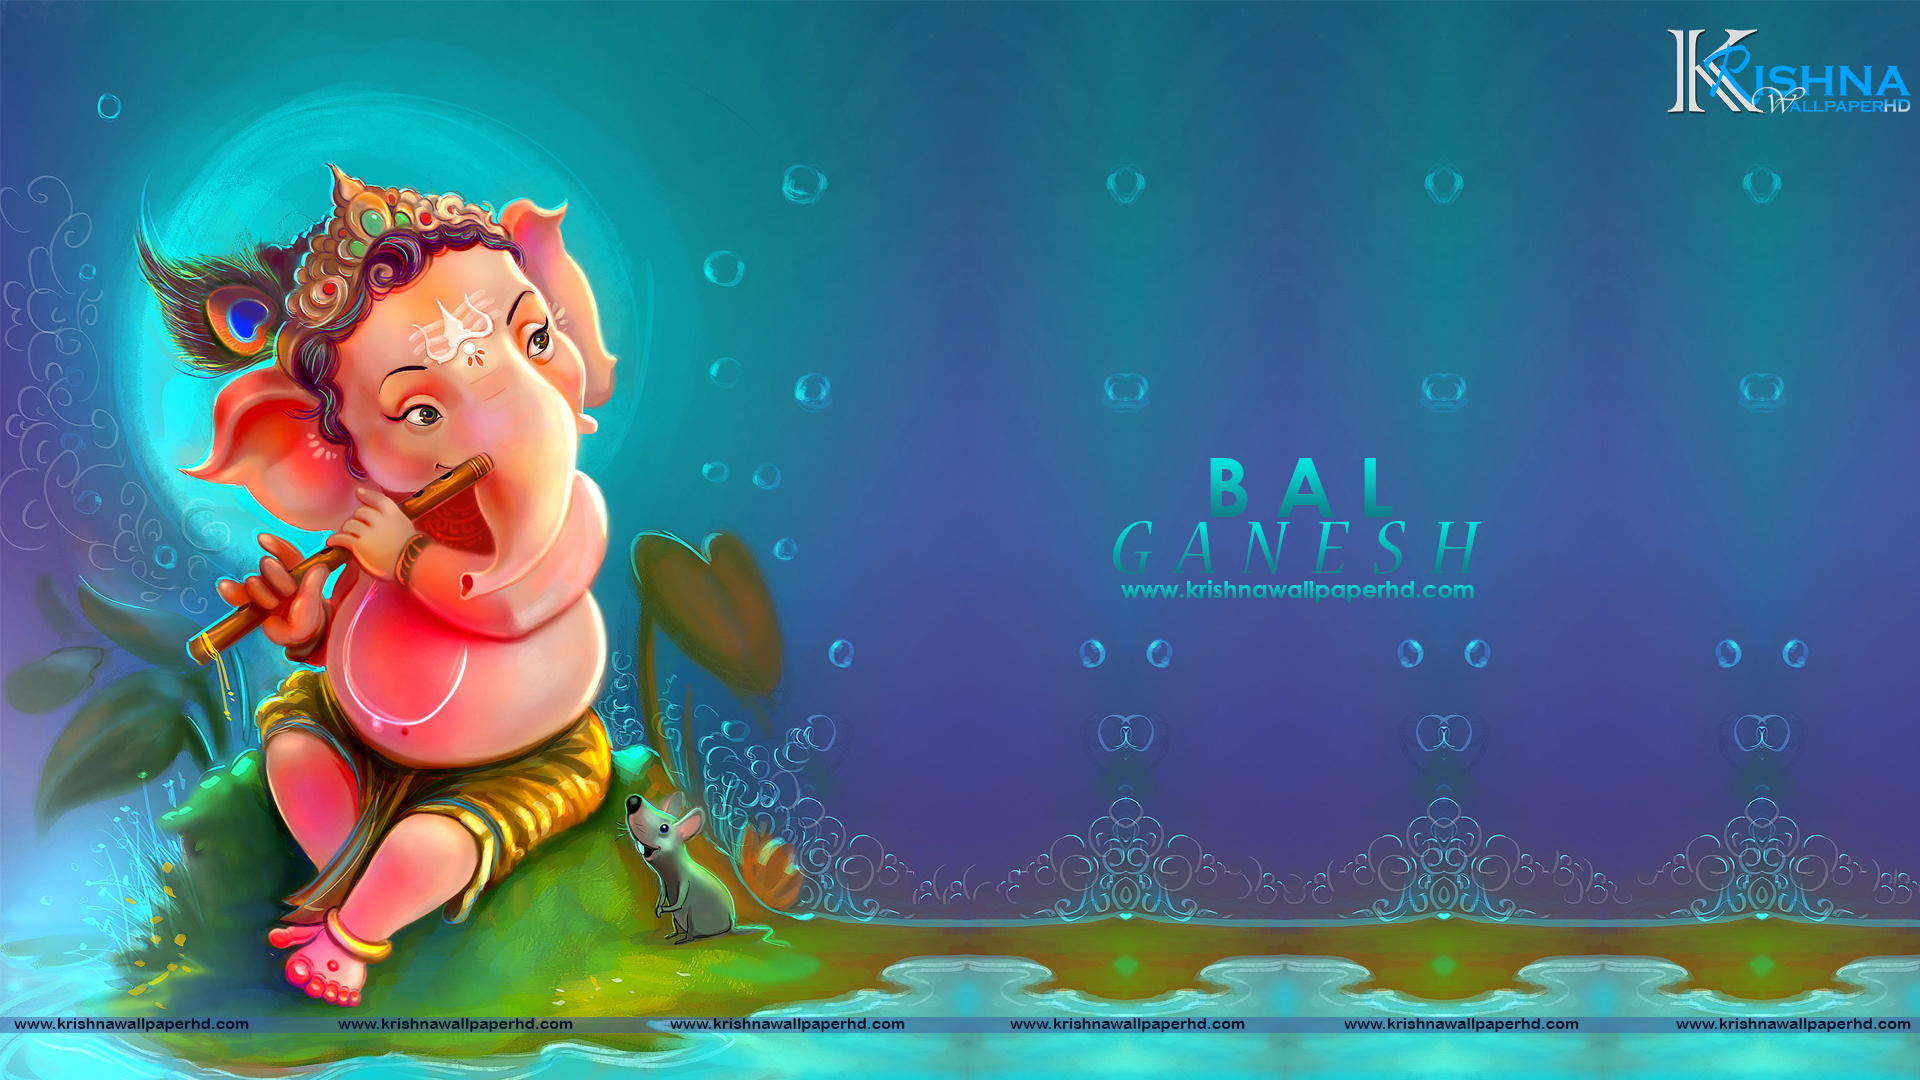 Bal Ganesh Full HD Size Wallpaper Free Download